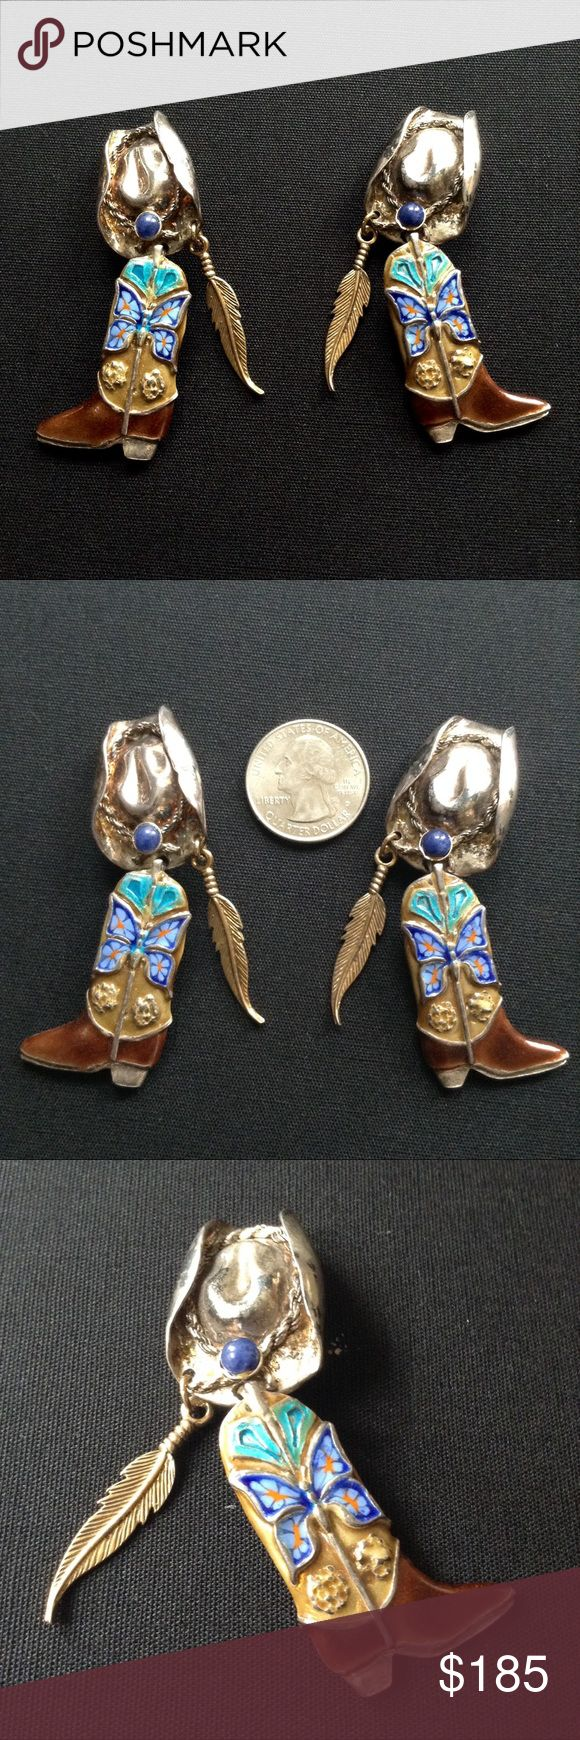 Vintage Sterling Southwest Cowboy Earrings 1980's over the top Southwest themed Earrings. Handcrafted mixed metals and techniques. Impeccable workmanship. Colorful email on the articulating boot with a super blue & orange butterfly. Carved Sterling silver cowboy hat with twisted silver and blue jasper stone. Embellished with an embossed brass feather. Clip ons 22g each. Stampd Sterling with artist's Hallmark a big cursive capital A. Can't make out the name. Please let me know if you know the…